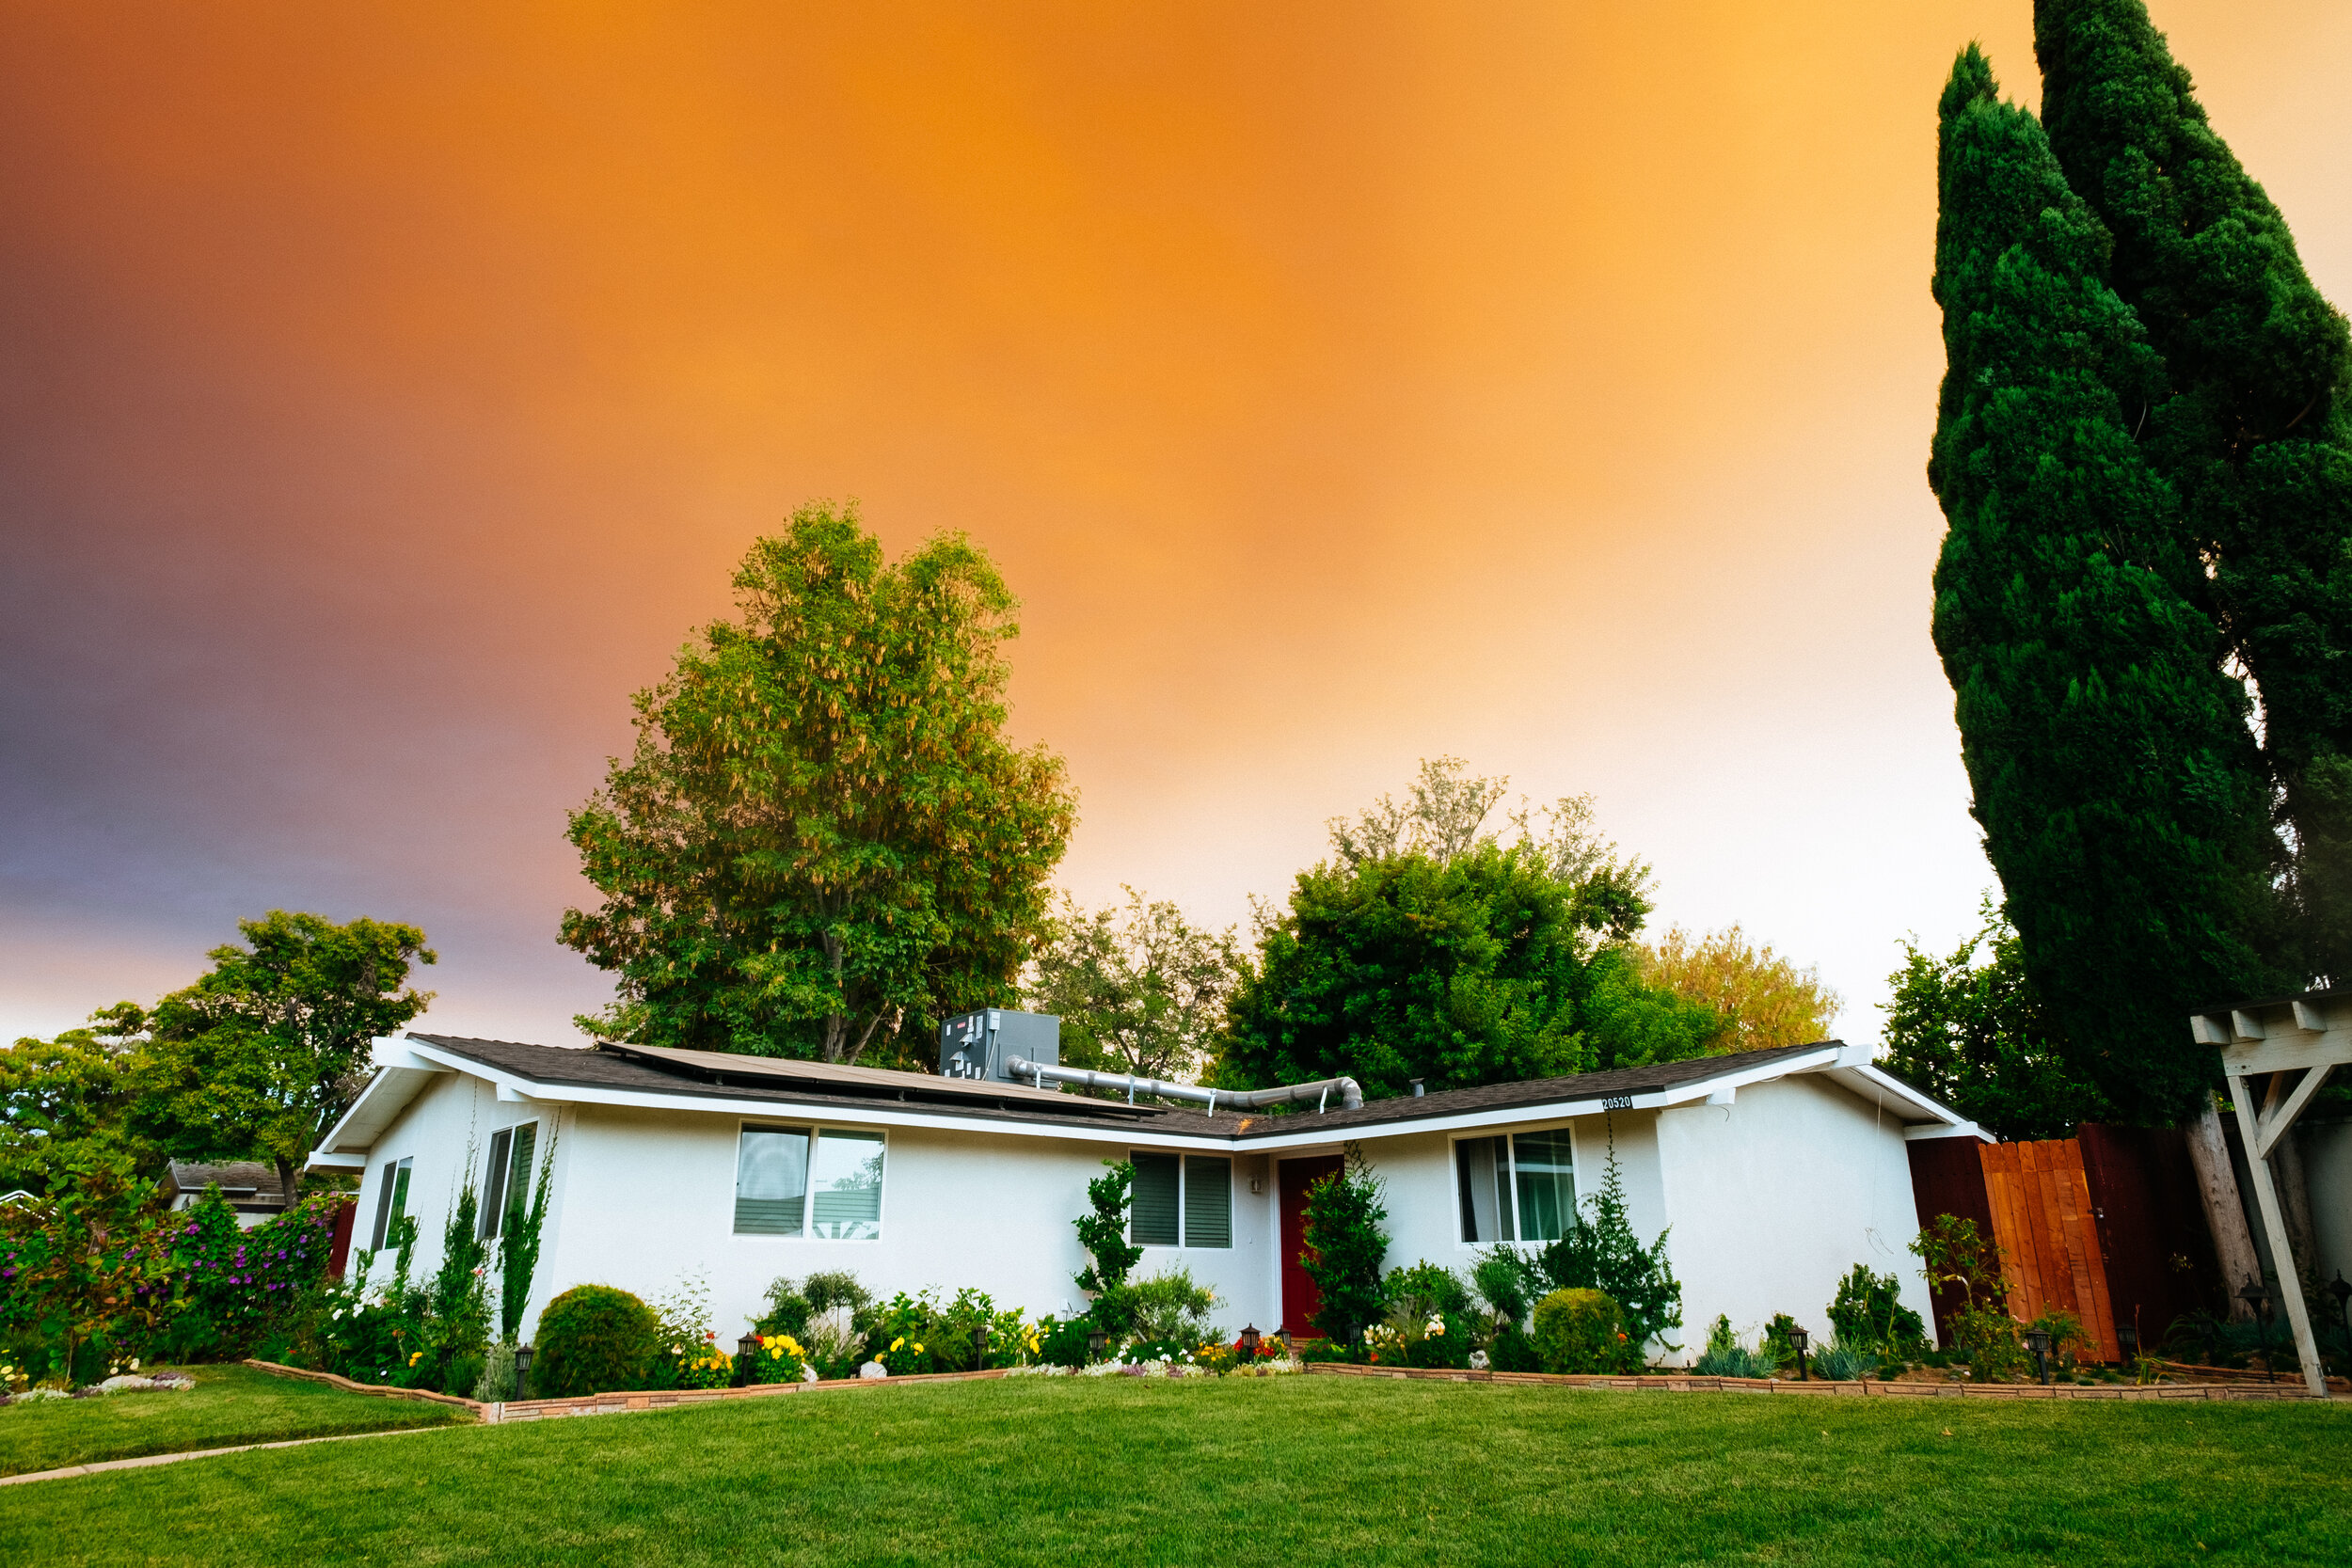 Appraisal 101: When Is A Property Appraisal Needed And How Will It Impact Me? -